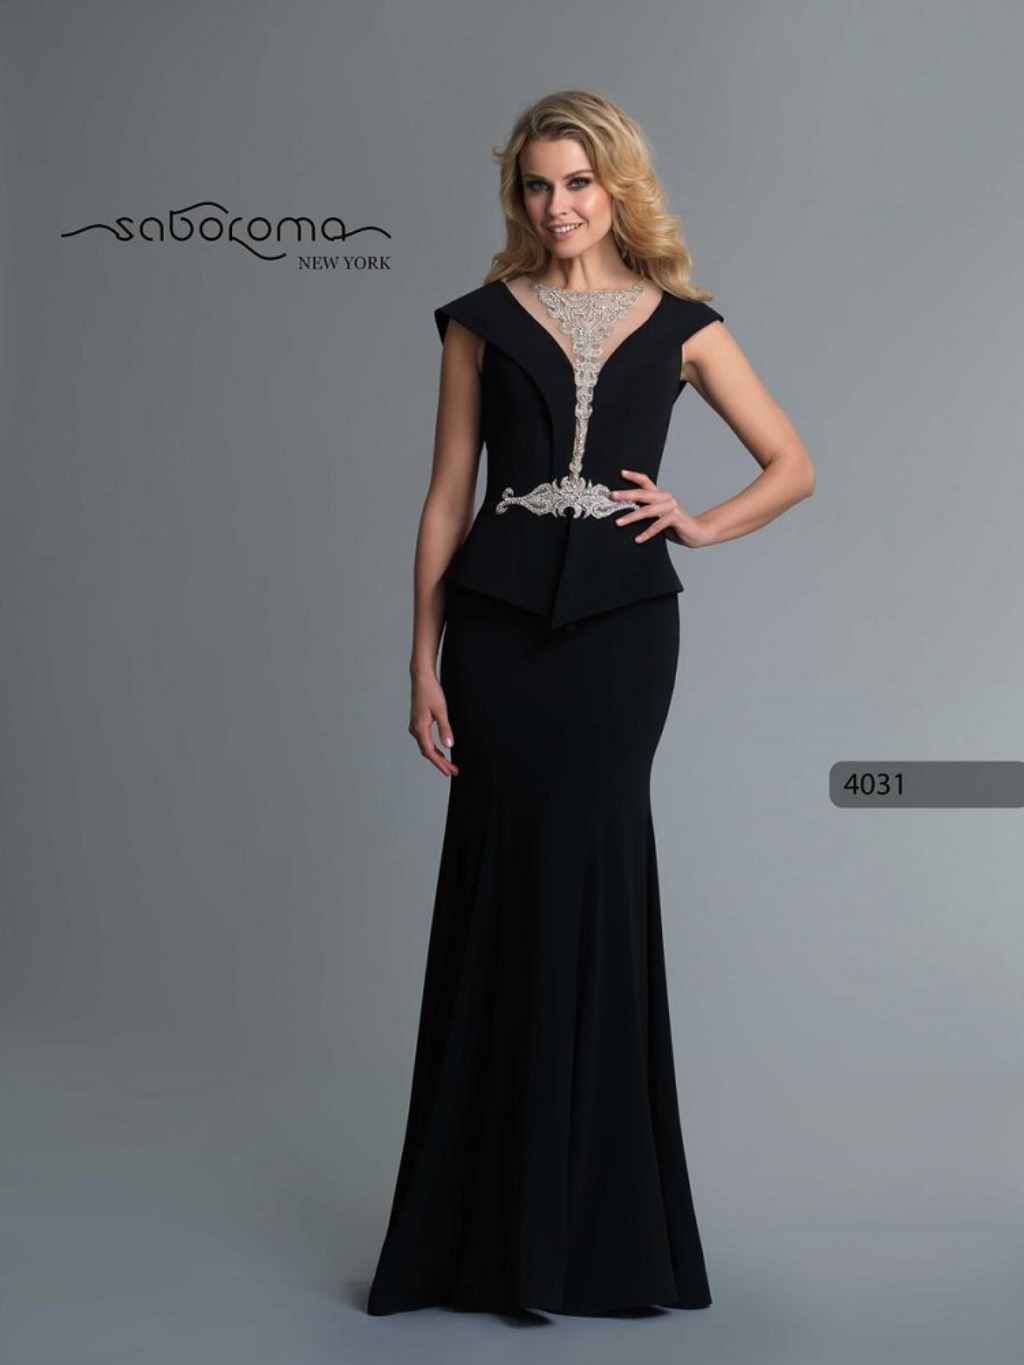 Saboroma Evening Wear Trunk Show